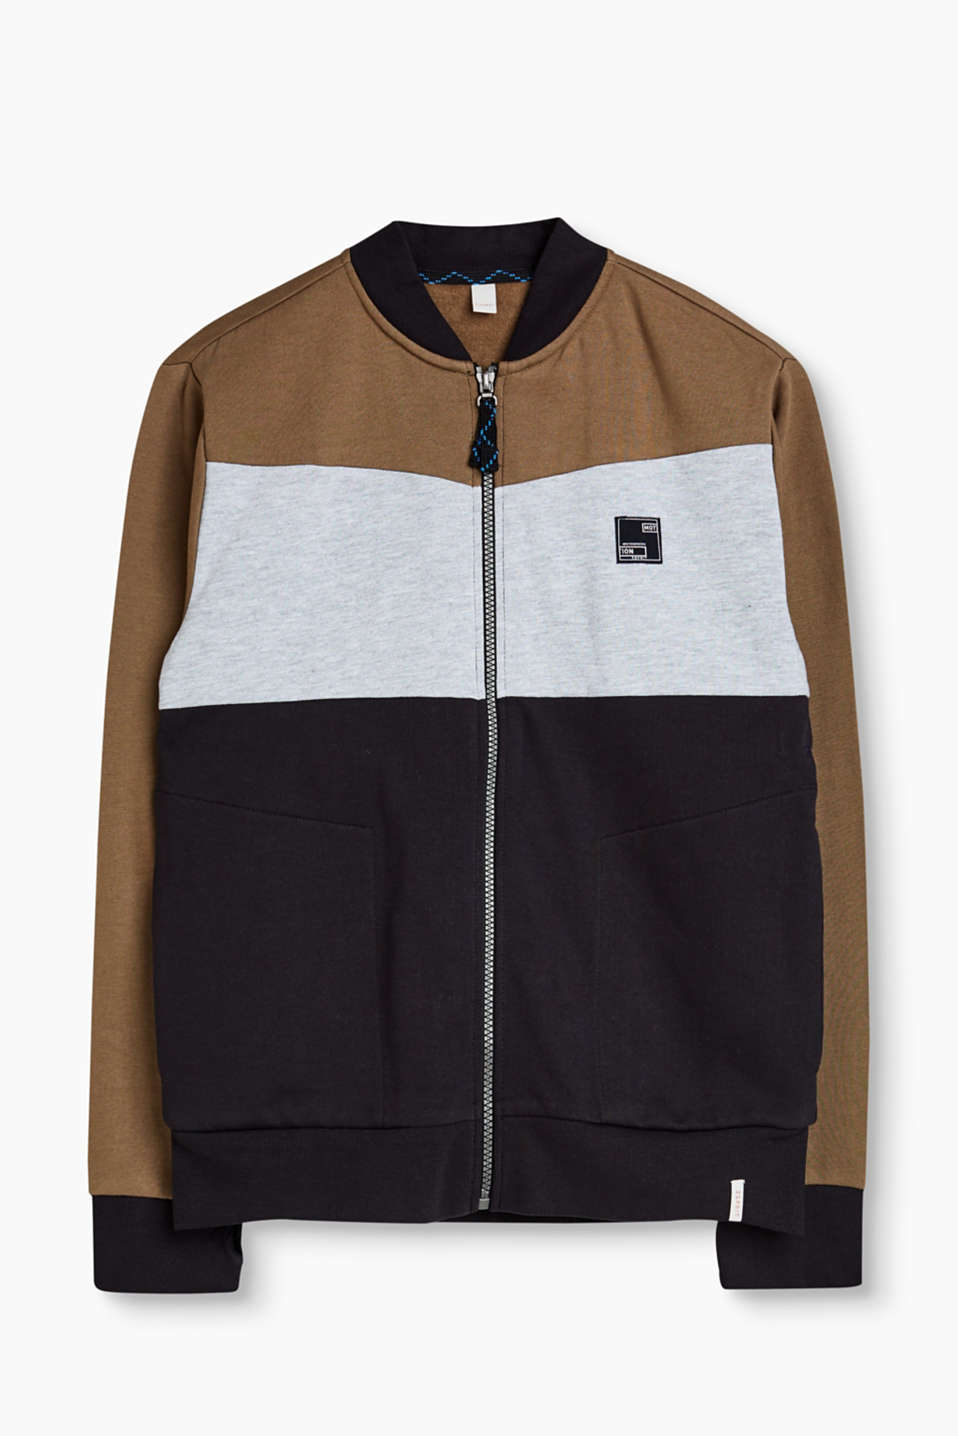 Esprit - Sweatshirt jacket in 100% cotton